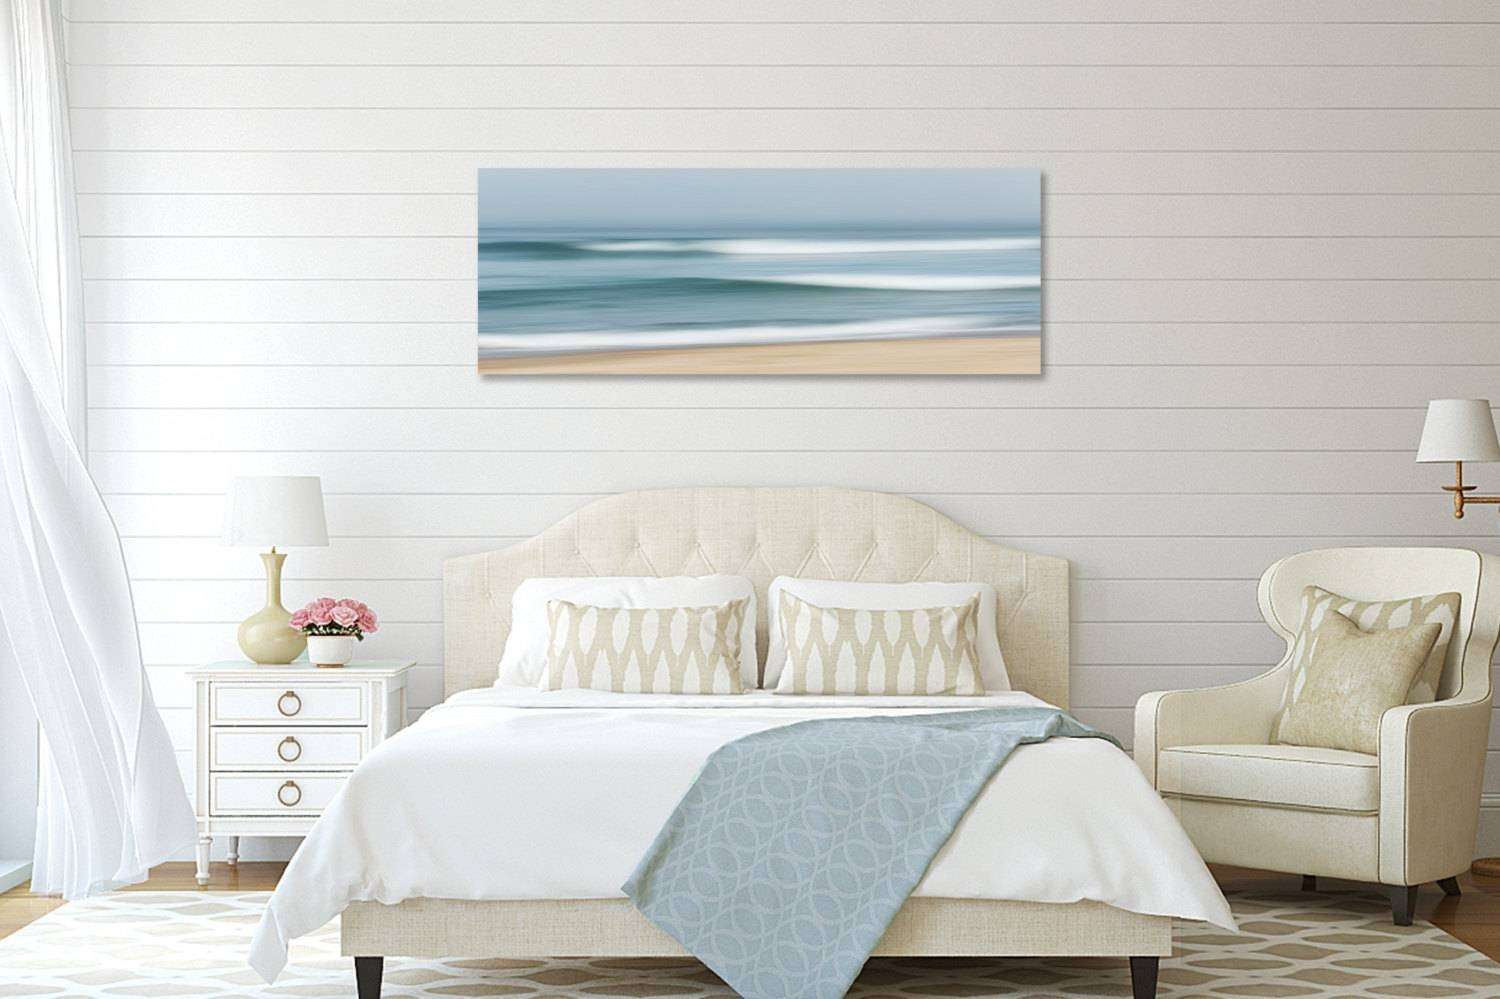 Coastal Wall Decor Large Abstract Beach Canvas Wall Art Throughout Newest Coastal Wall Art Canvas (View 12 of 20)